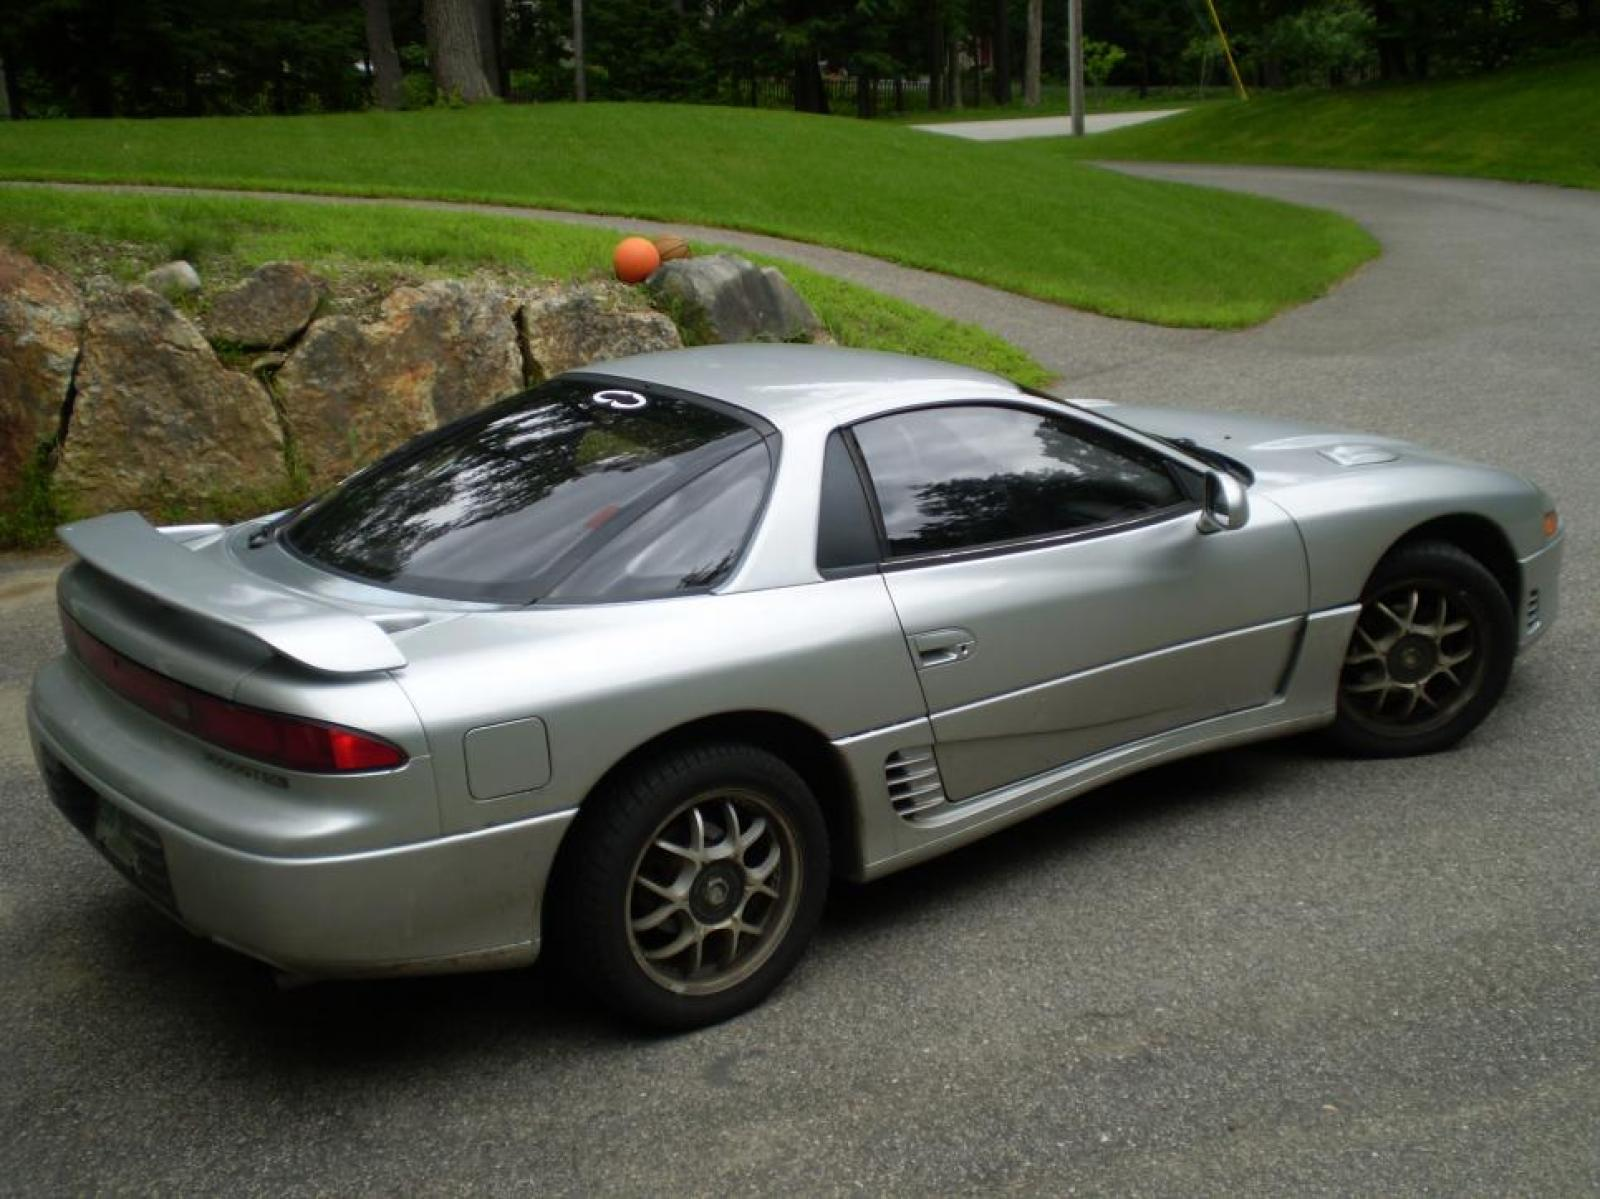 hight resolution of 800 1024 1280 1600 origin 1992 mitsubishi 3000gt